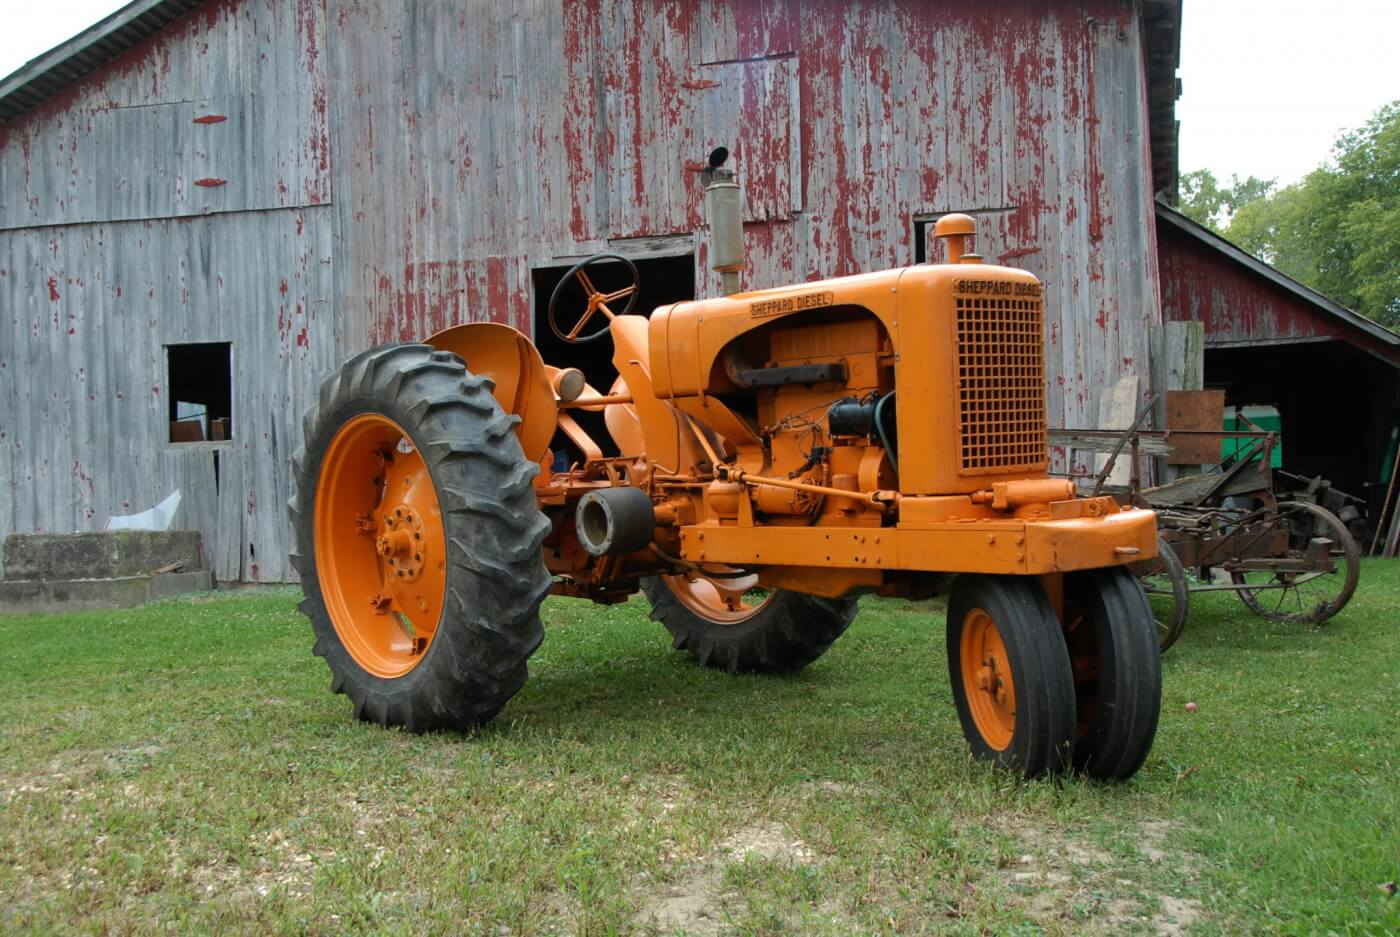 The Biller's 1950 SD-3 rowcrop was purchased with many of the bells and whistles, including both drum and live shaft PTO, live hydraulics and lights. Not ordered was the adjustable wide front axle, rear 3-point lift and big-bore engine. Base price was $2,995 but we don't have a price list for the extras. The tractor has a bit of an Allis-Chalmers look to it but the resemblance is only superficial and unintended.